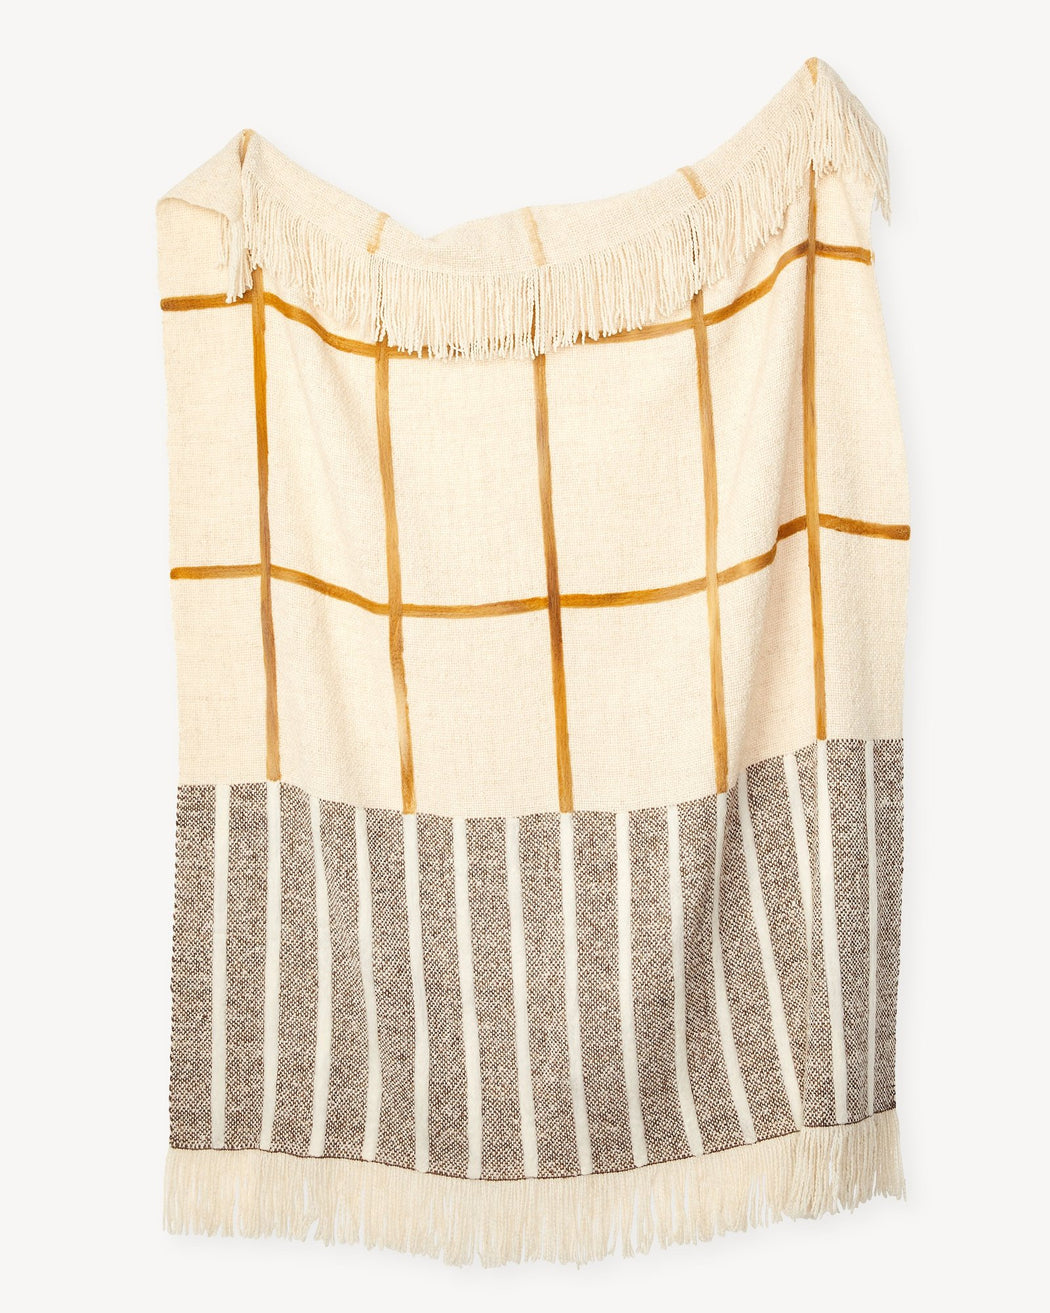 Split Grid Throw Turmeric